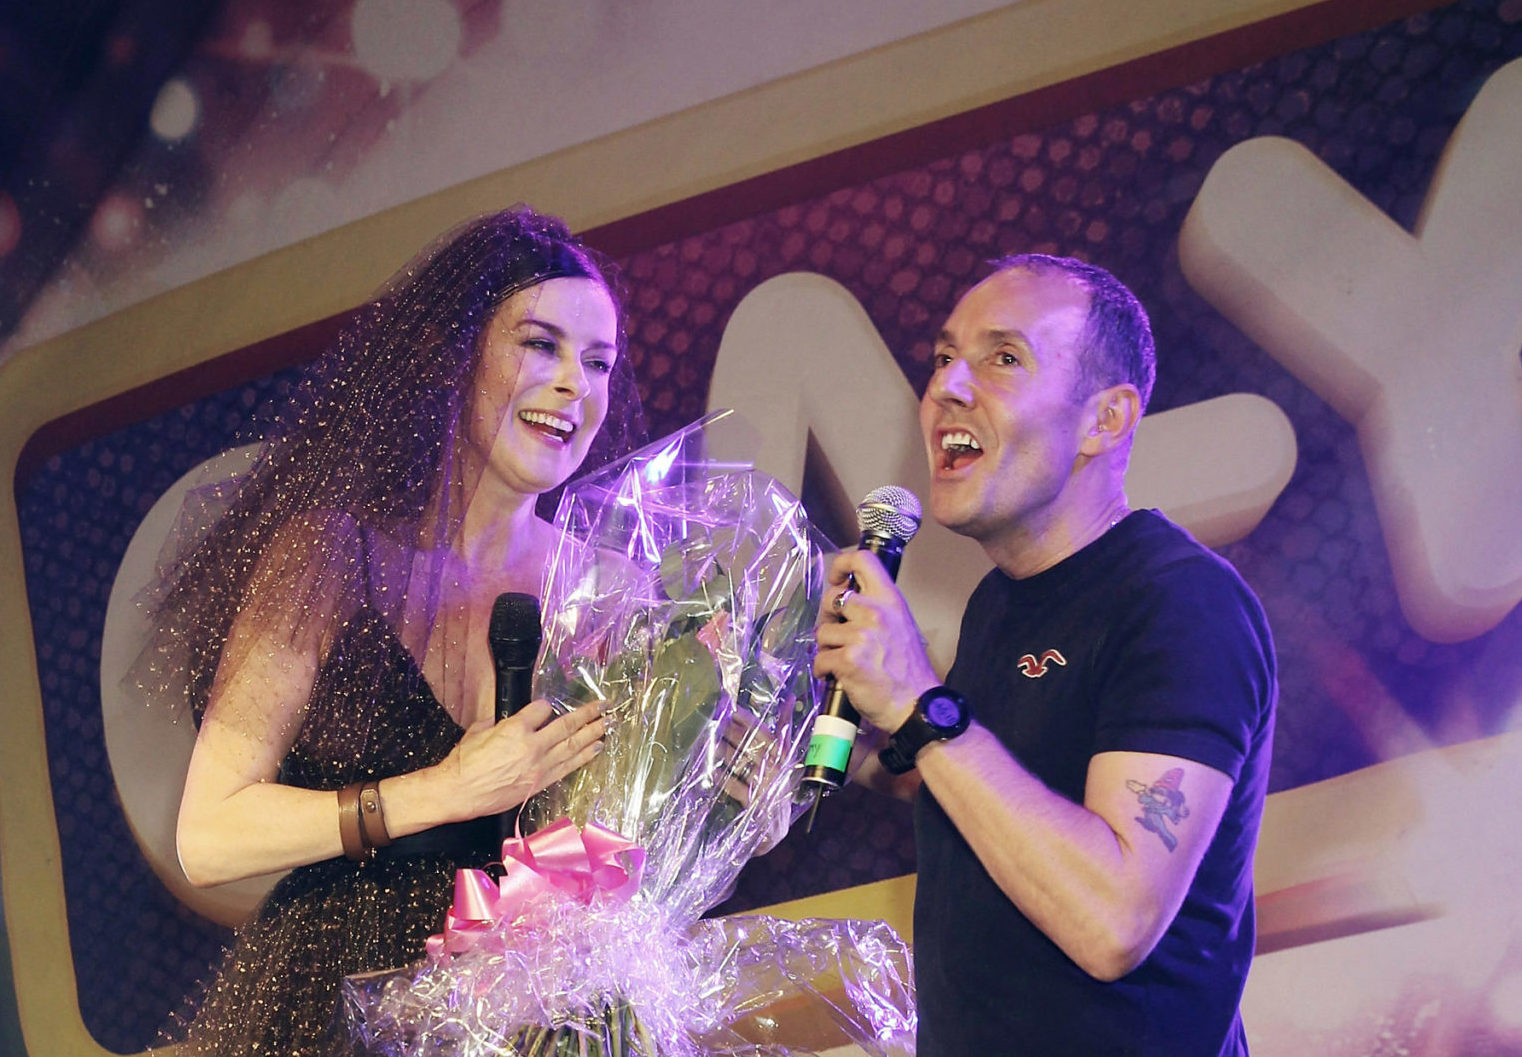 Lisa Stansfield presented with flowers by Jeremy Joseph on stage at G-A-Y Heaven on May 3, 2014 in London, England. (Jo Hale/Redferns via Getty Images)